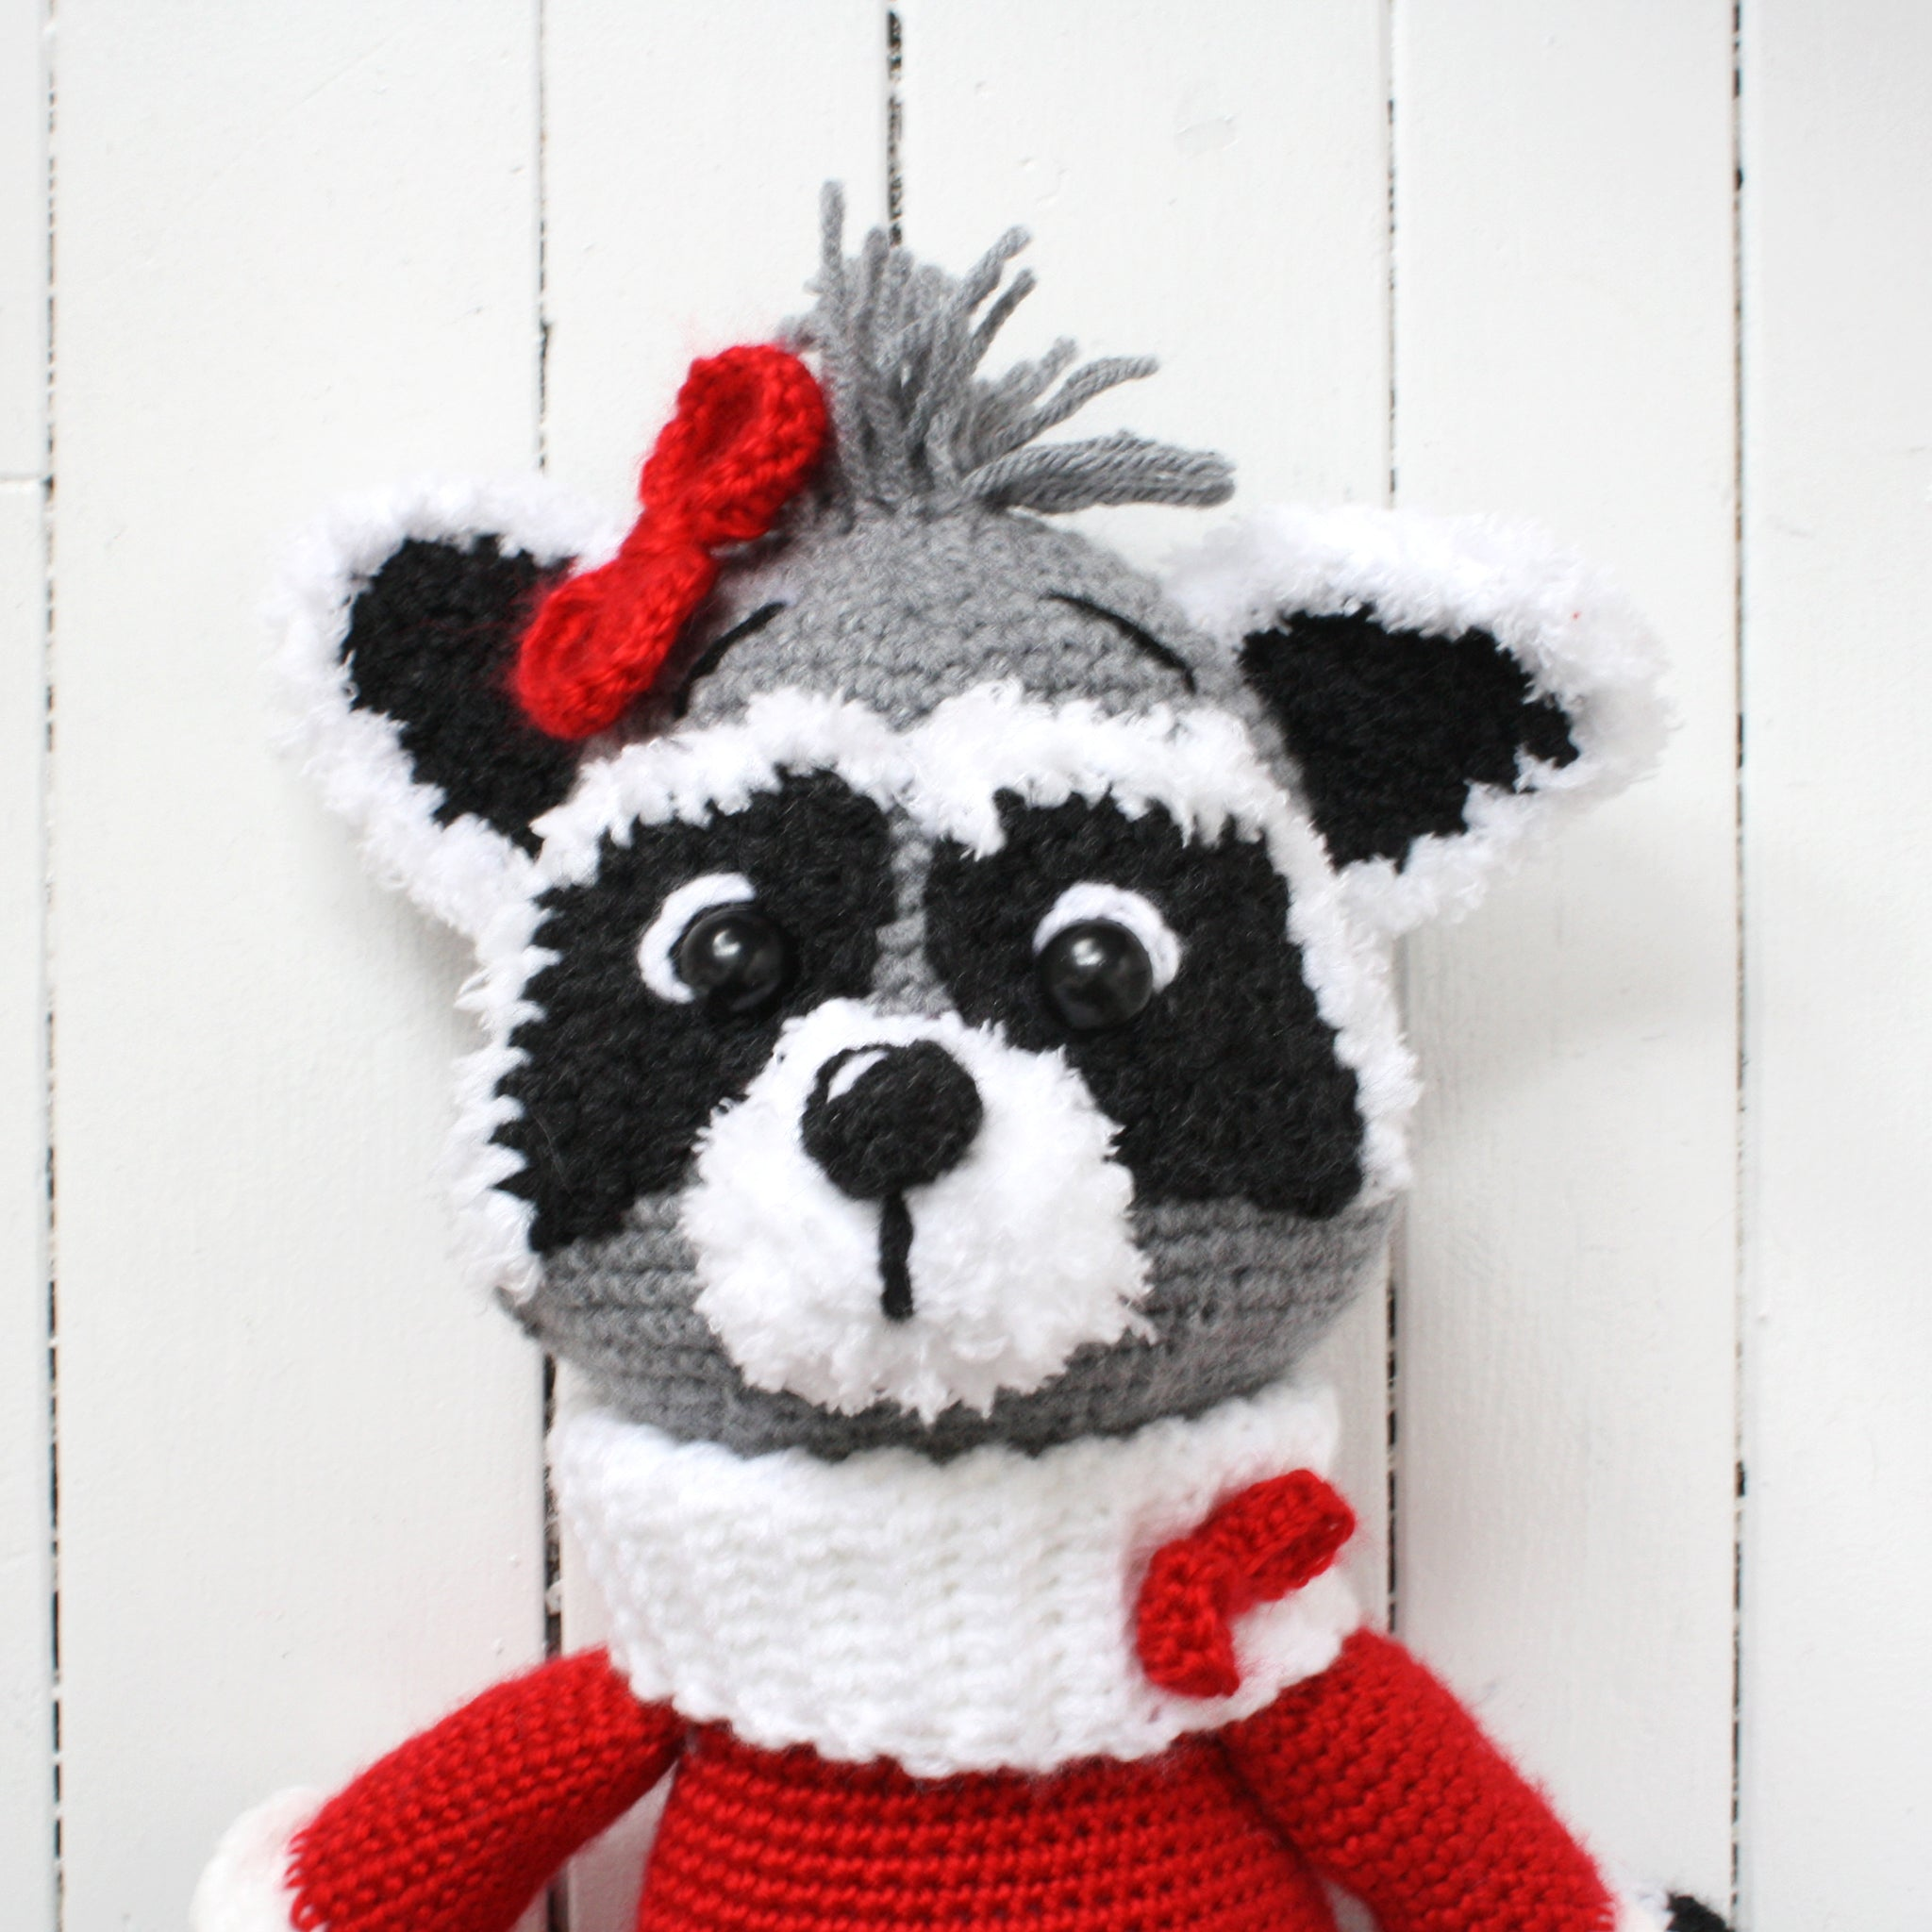 Close up of crocheted raccoon with red dress and bow